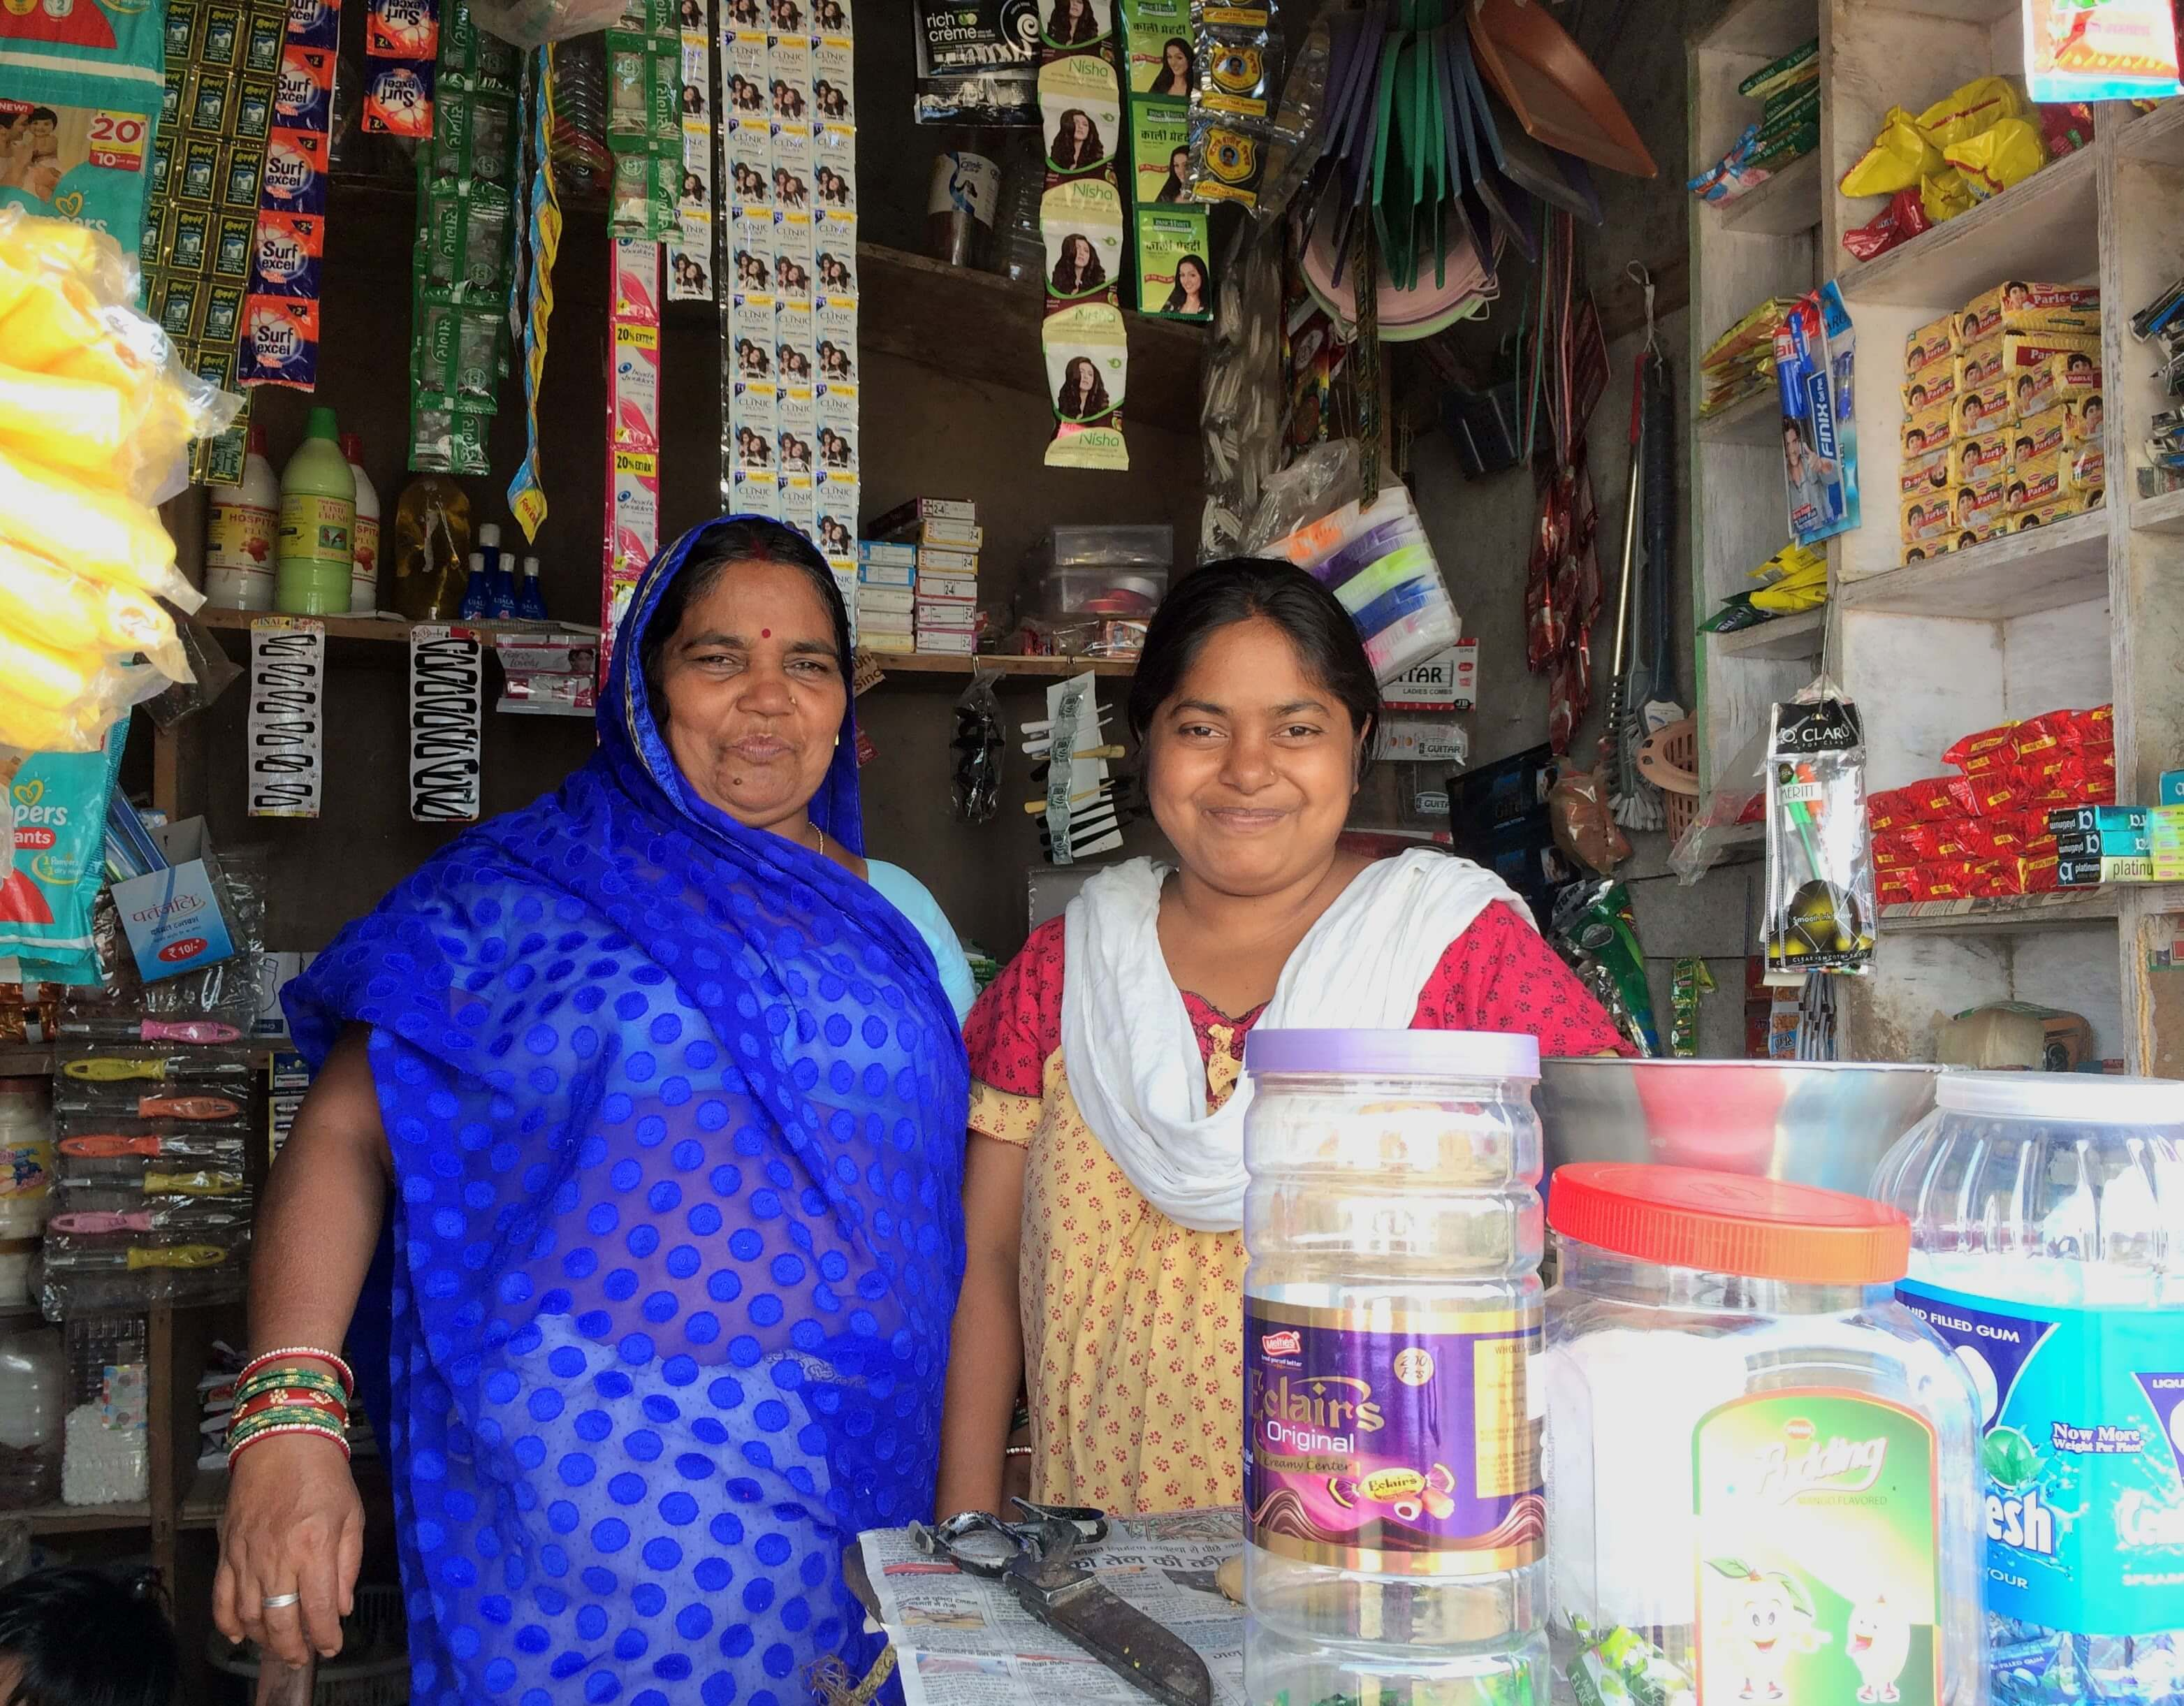 Kamini Kashyap runs a grocery store and a tailoring business just outside of Bilaspur. She joined a Joint Liability Group, where seven women offer each other support and share small business loans from RBL Bank, facilitated by BASIX Sub-K. Her first loan helped her launch tailoring business by buying a sewing machine and materials.